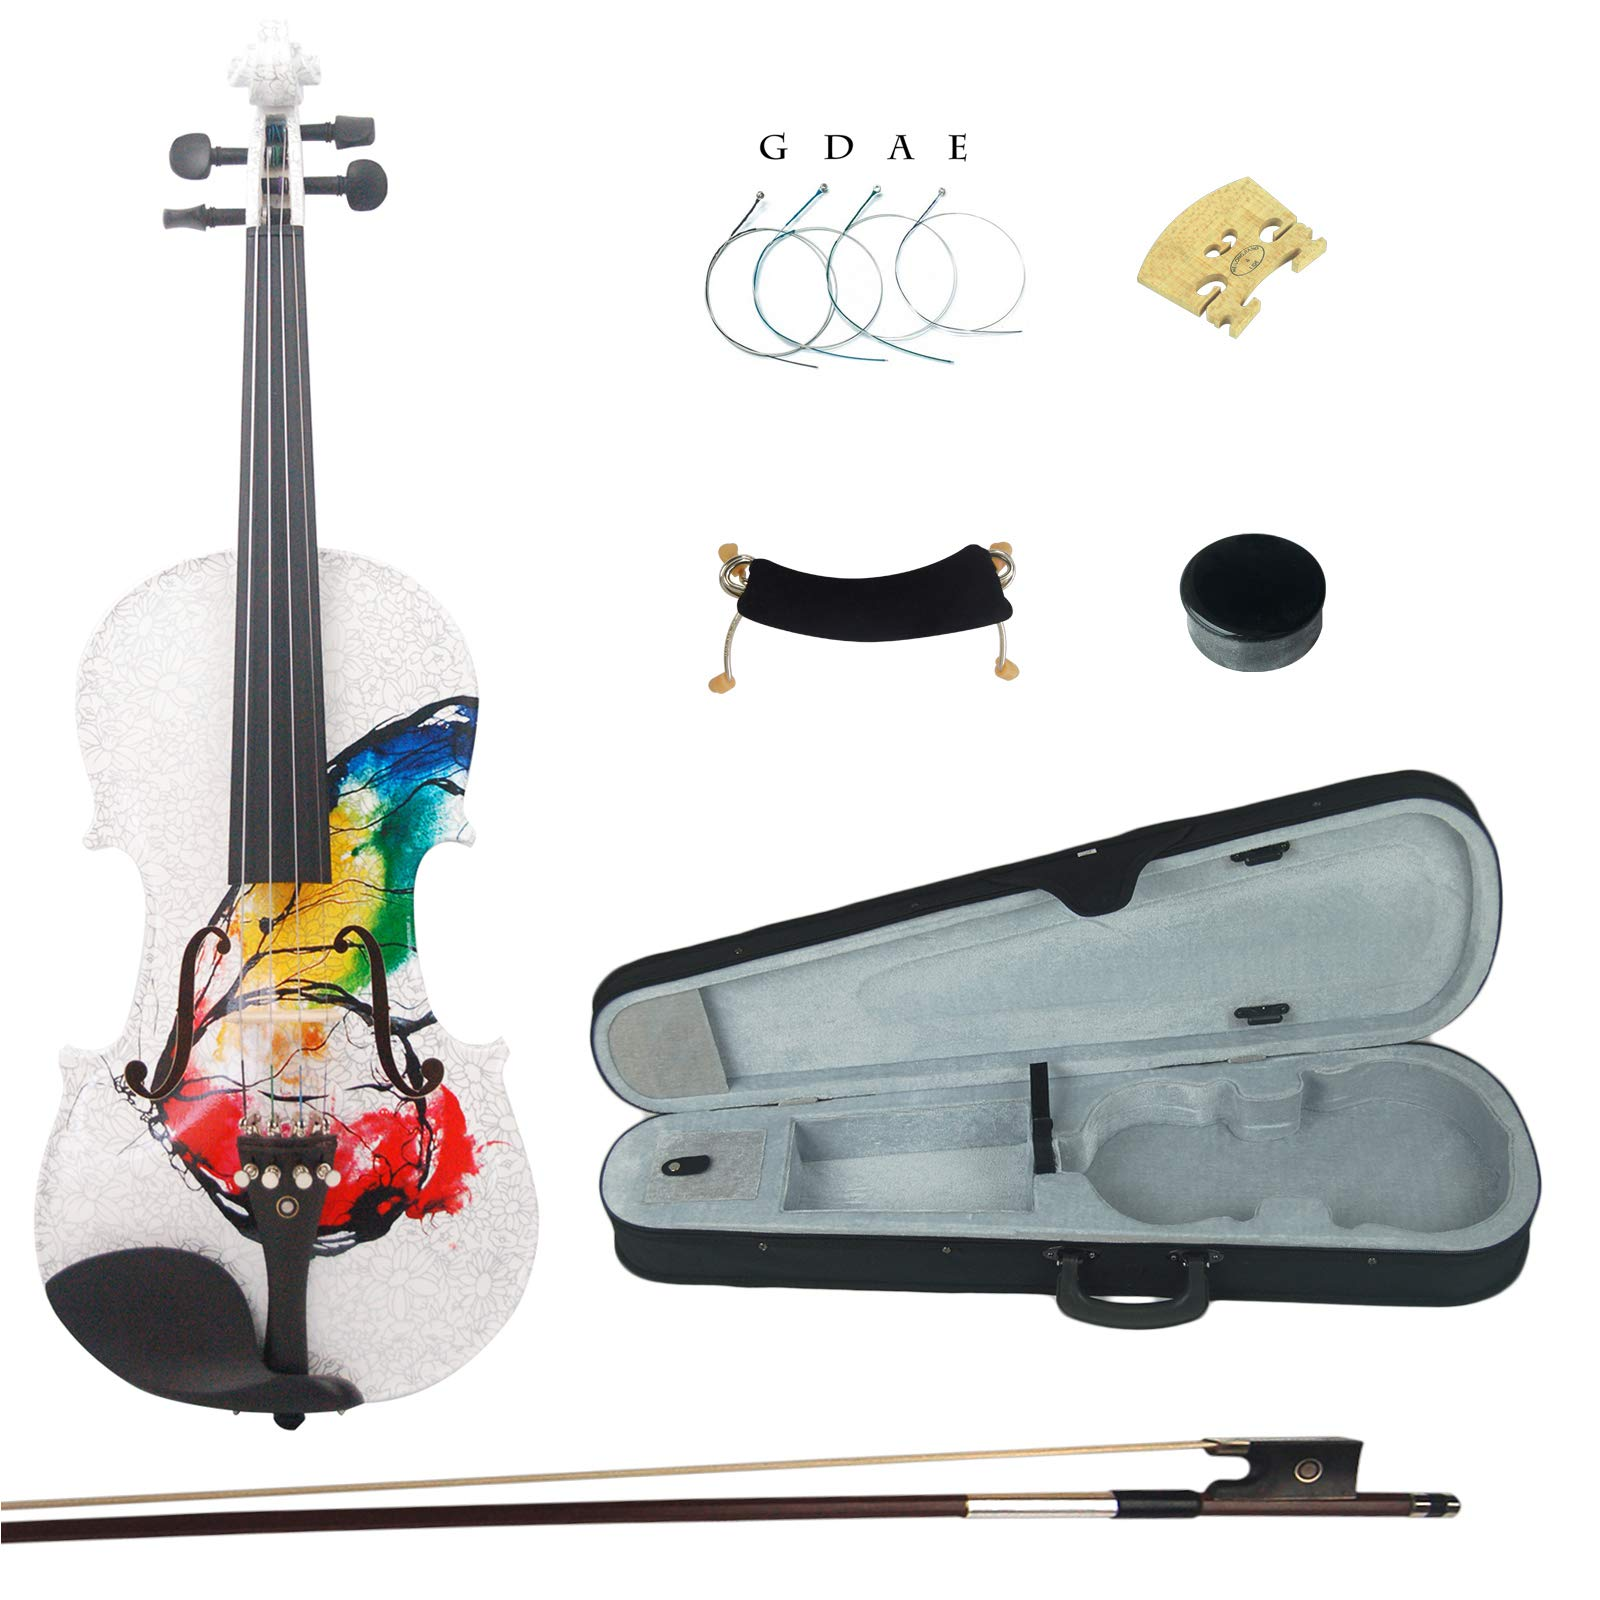 Kinglos 4/4 Butterfly Flower Colored Ebony Fitted Solid Wood Violin Kit with Case, Shoulder Rest, Bow, Rosin, Extra Bridge and Strings Full Size (NHS3002) by Kinglos (Image #1)